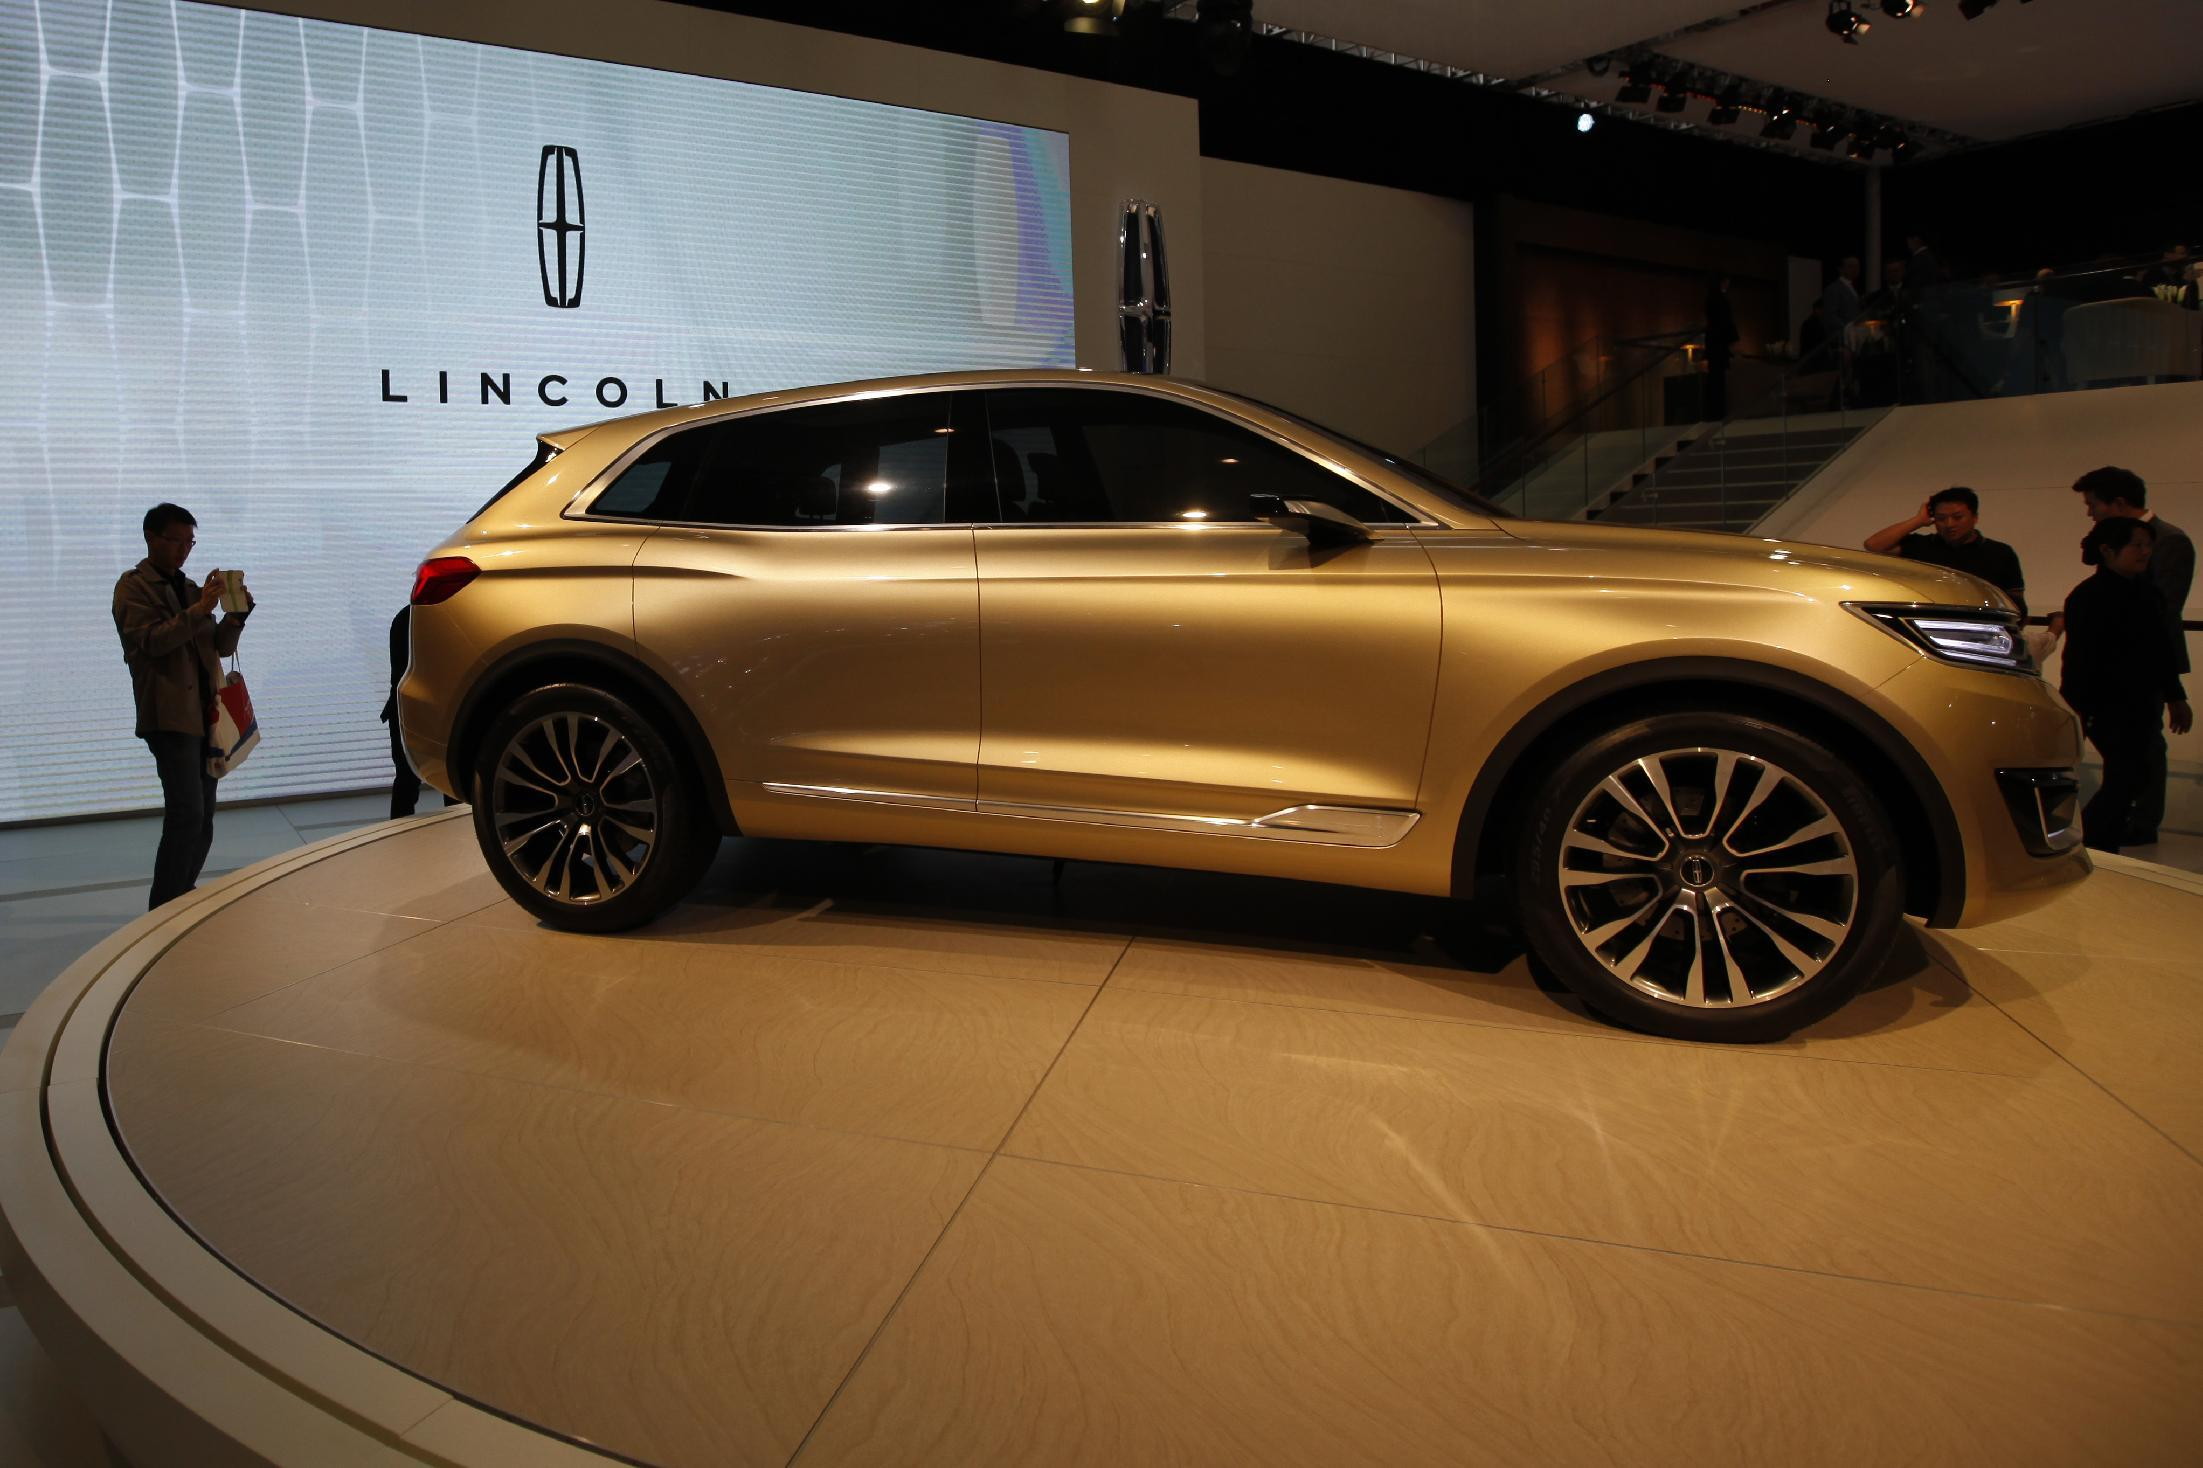 """A Lincoln car is put on display at the """"Auto China 2014"""" exhibition in Beijing in April 2014"""